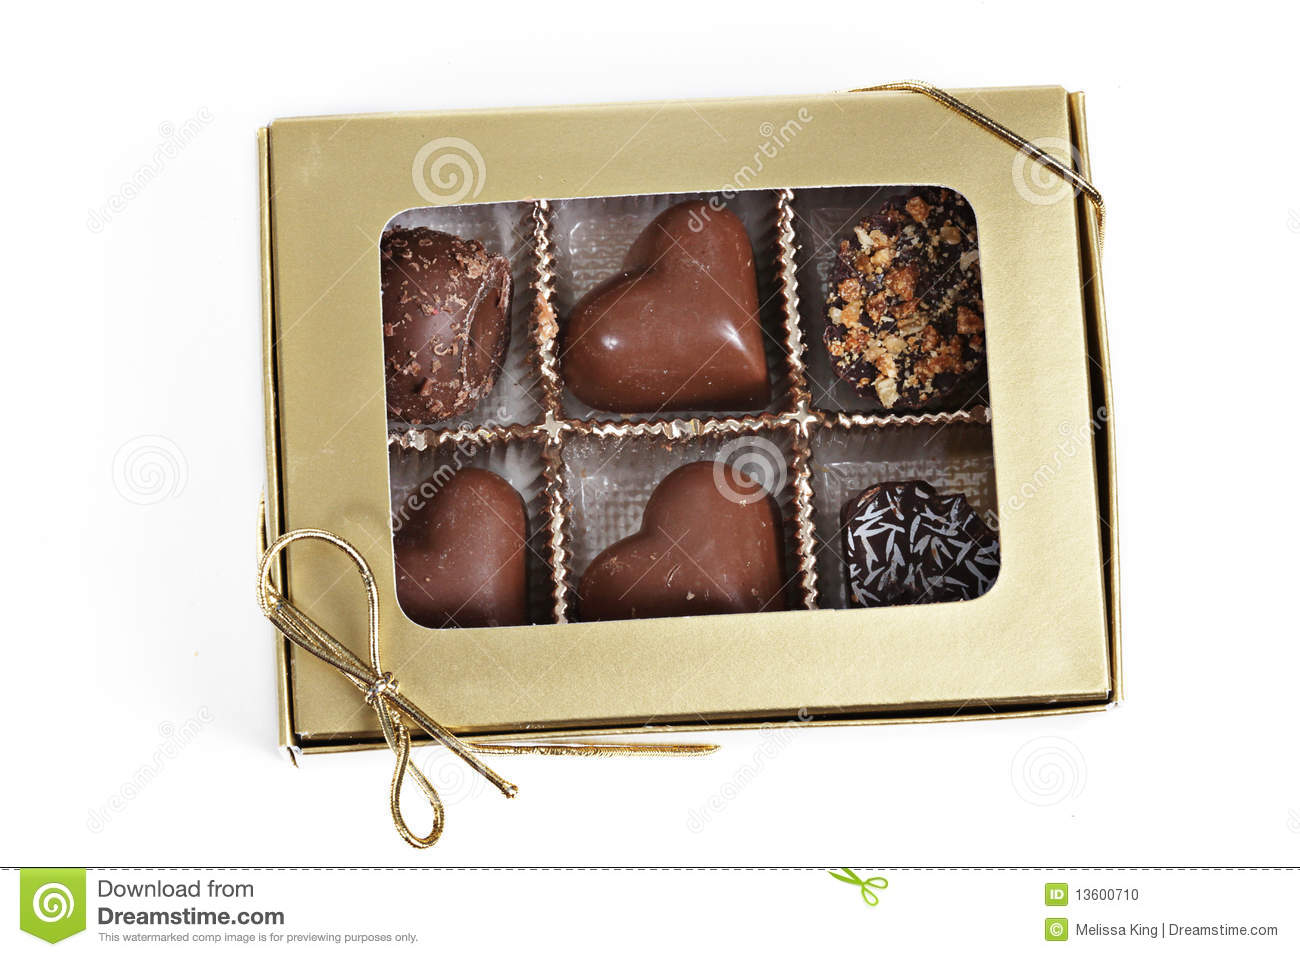 Rectángulo de chocolates